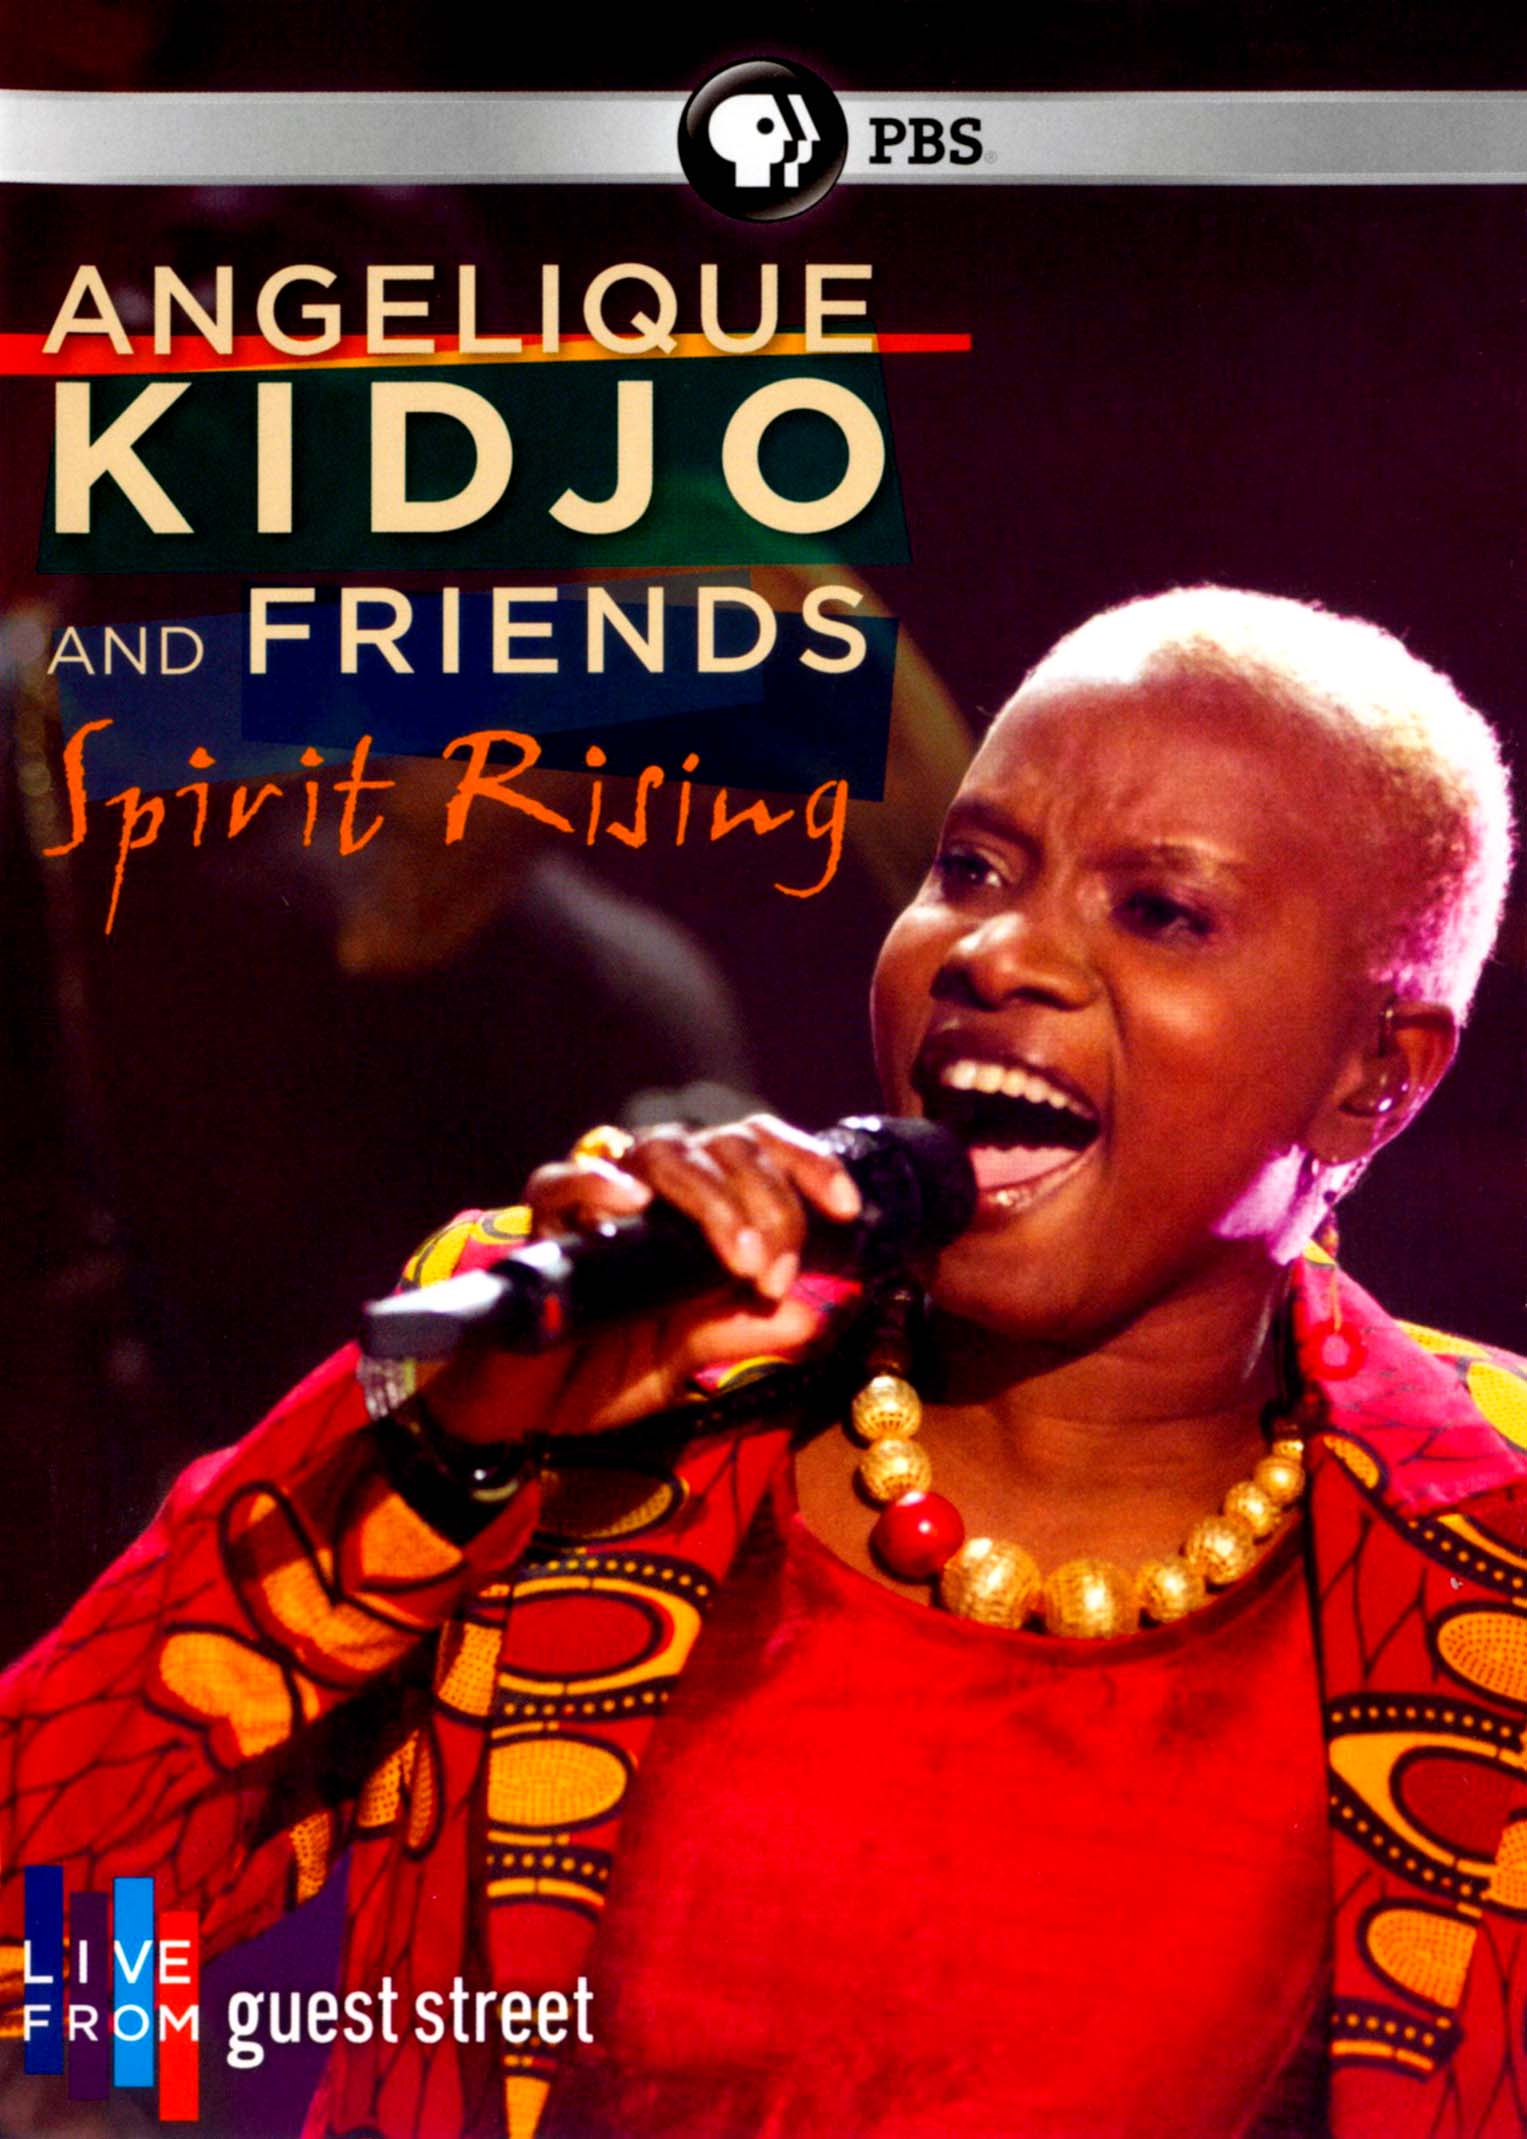 Live from Guest Street: Angelique Kidjo and Friends - Spirit Rising